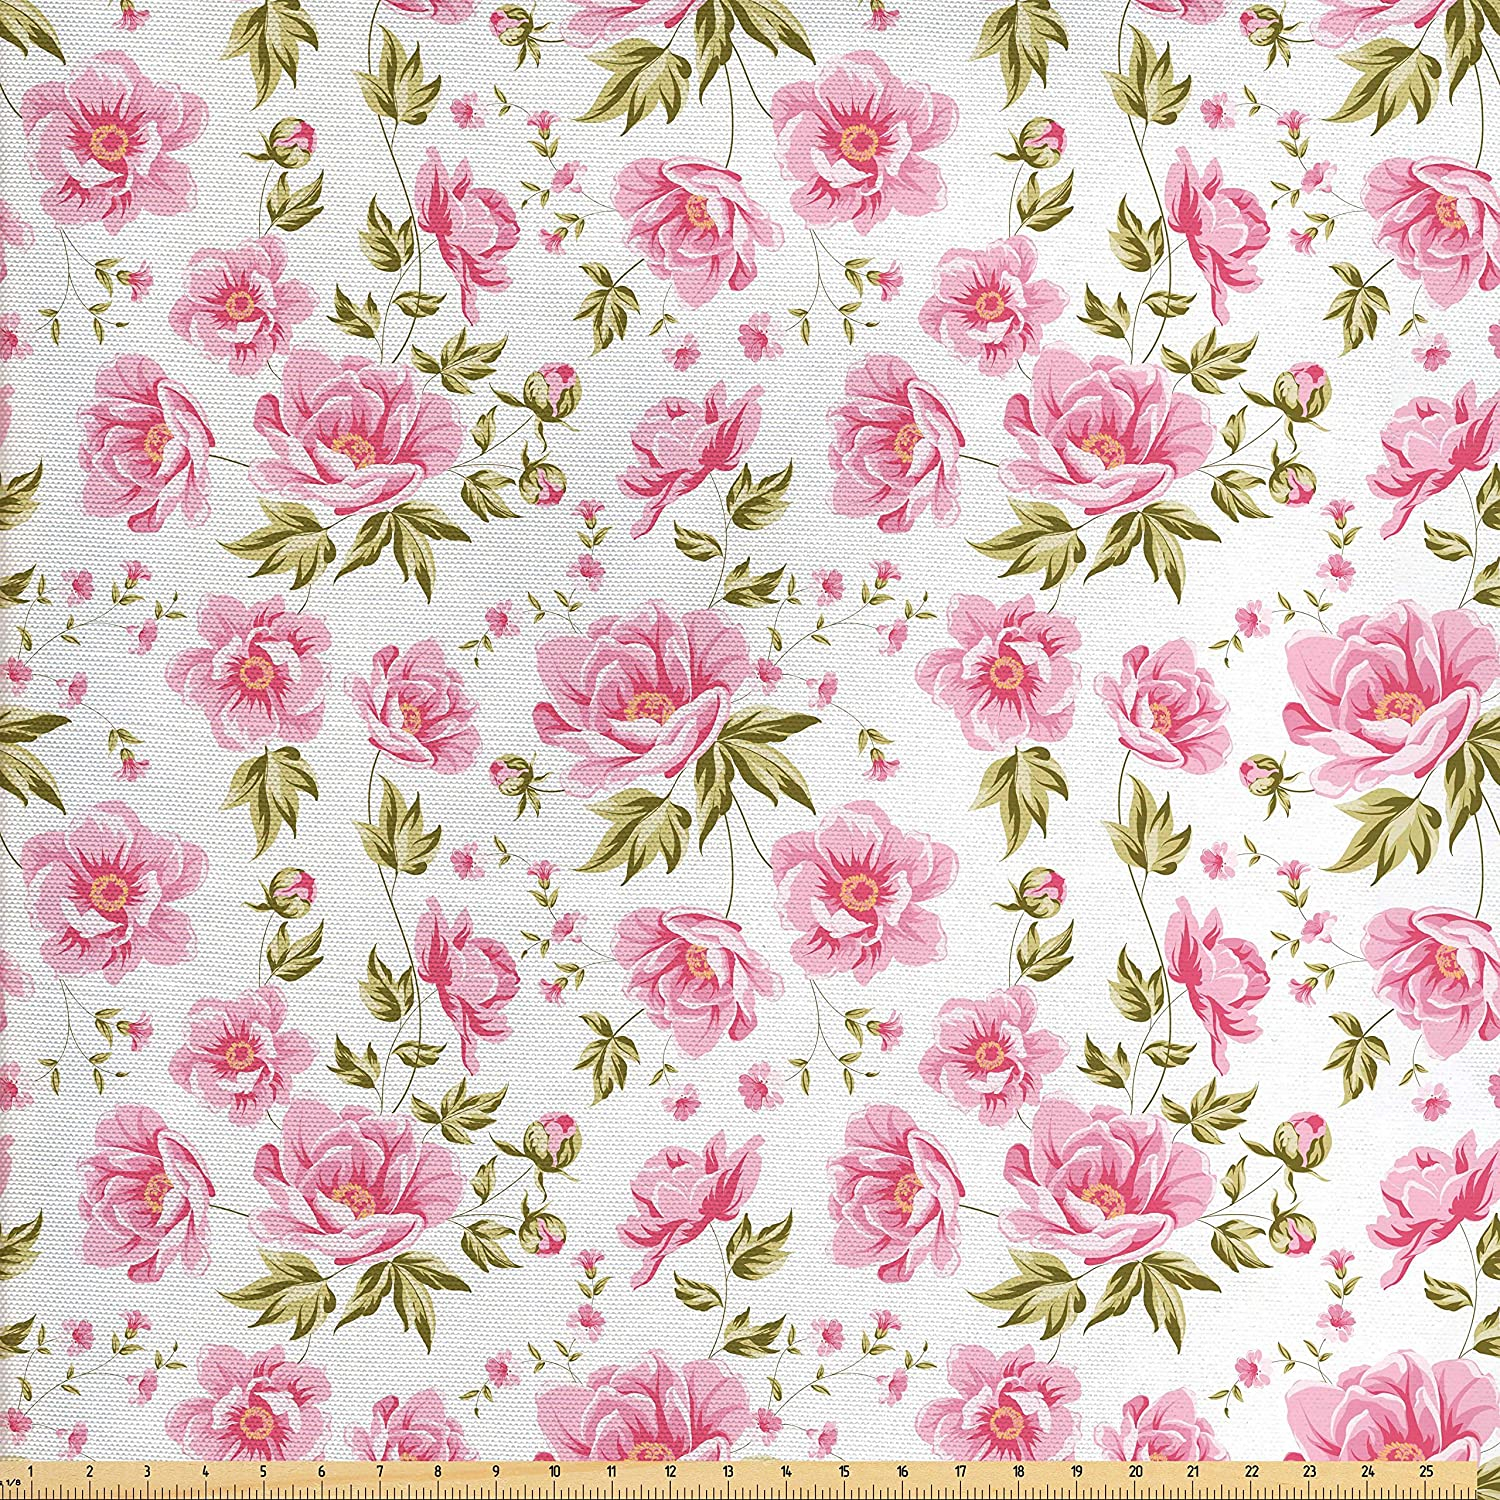 Amazon Com Ambesonne Floral Fabric By The Yard Peony Floral